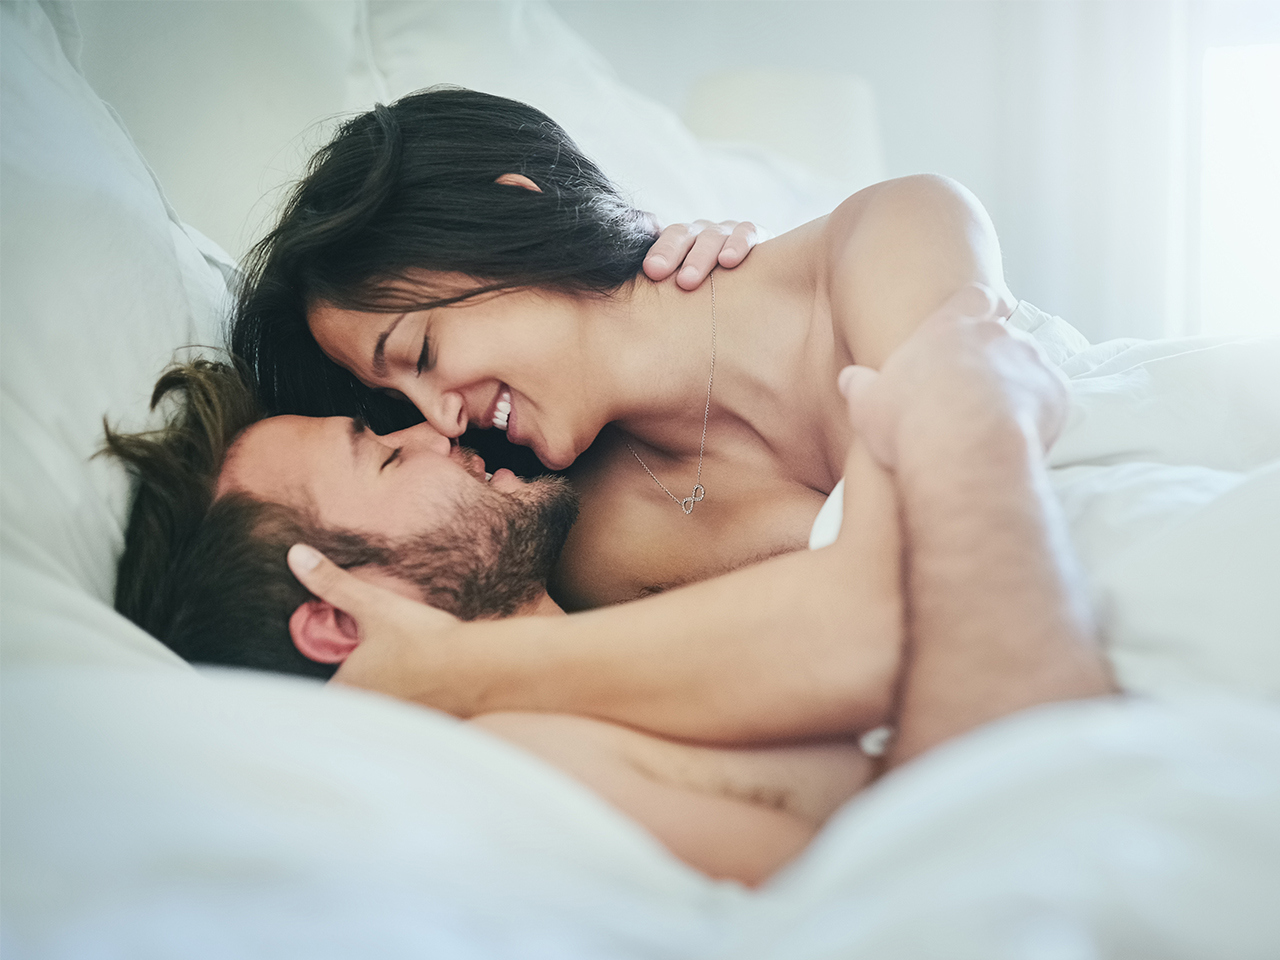 How to build up sexual stamina